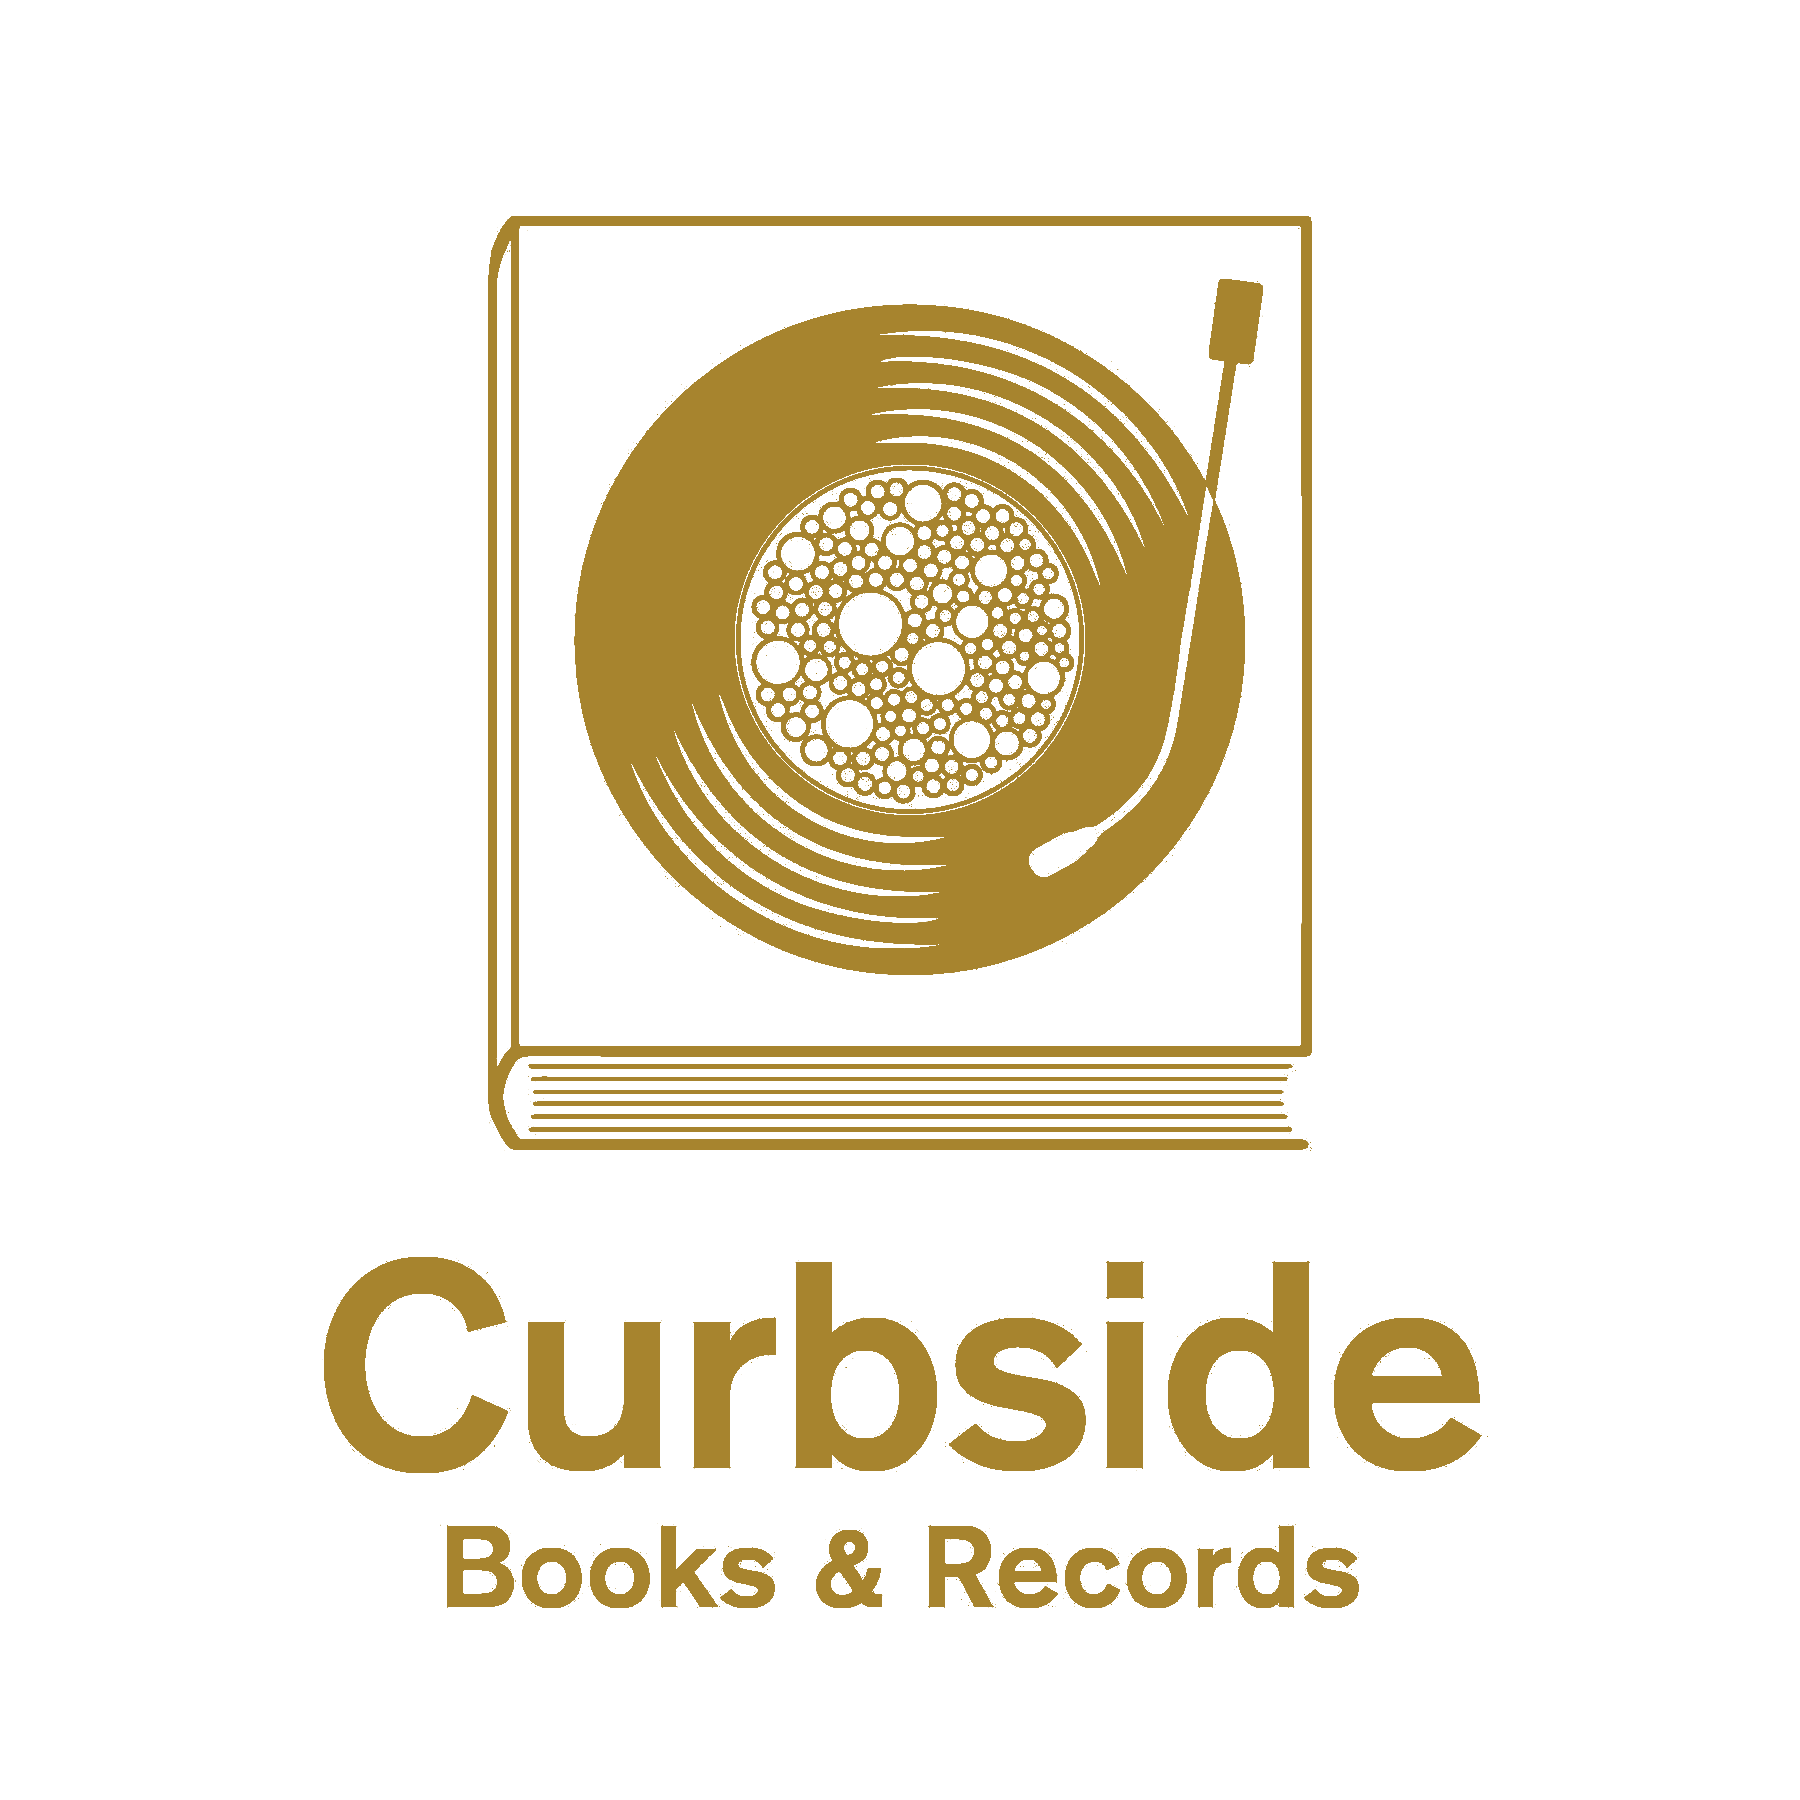 curbside_books_records_logo_gold.png